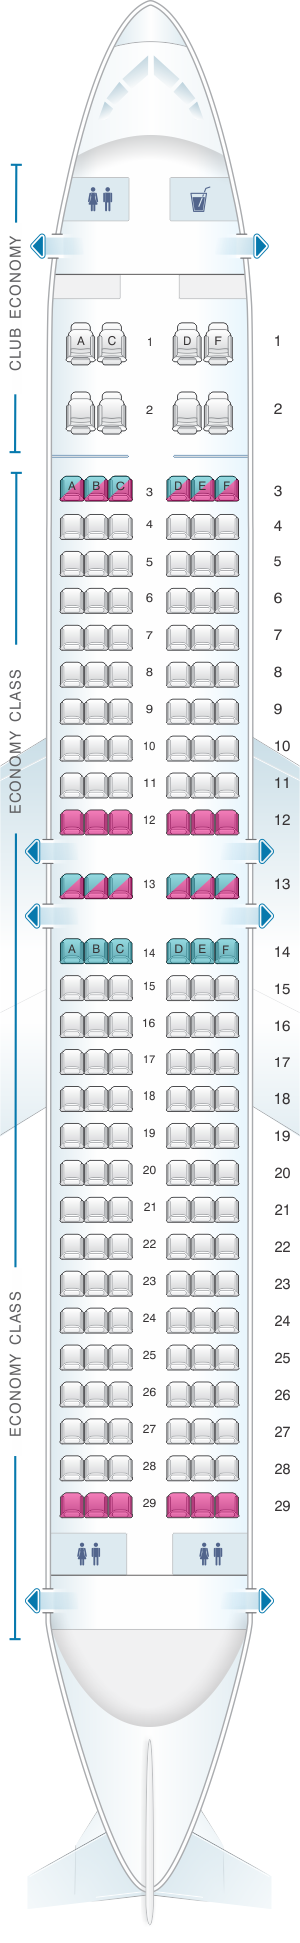 Seat map for Aerolineas Argentinas Boeing B737 800